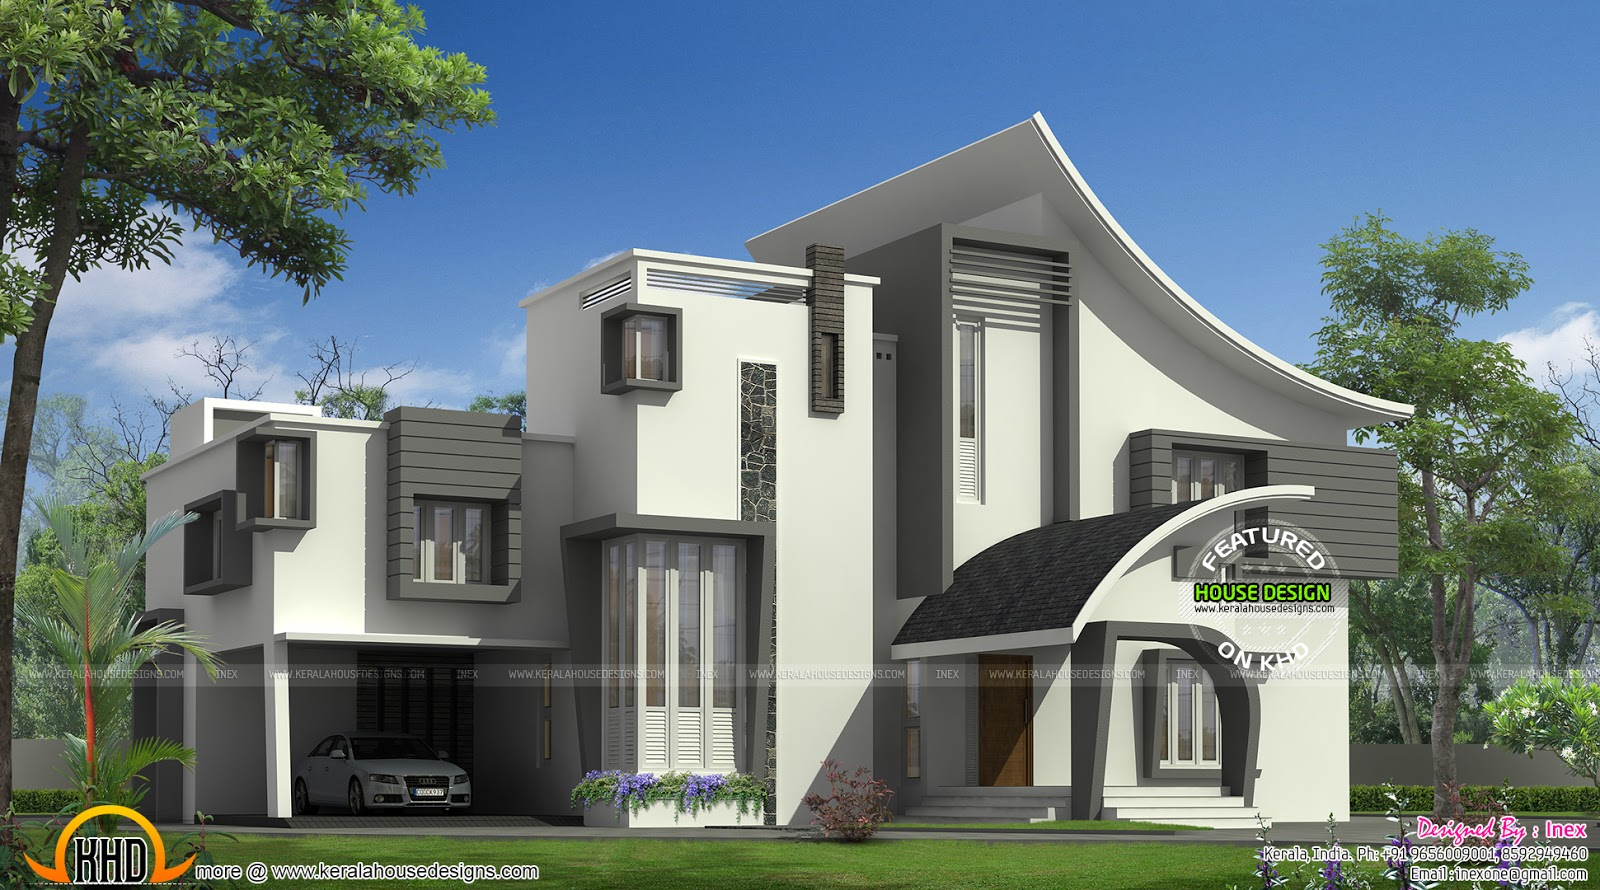 Ultra modern luxury home in kerala kerala home design and floor plans Ultra modern contemporary house plans